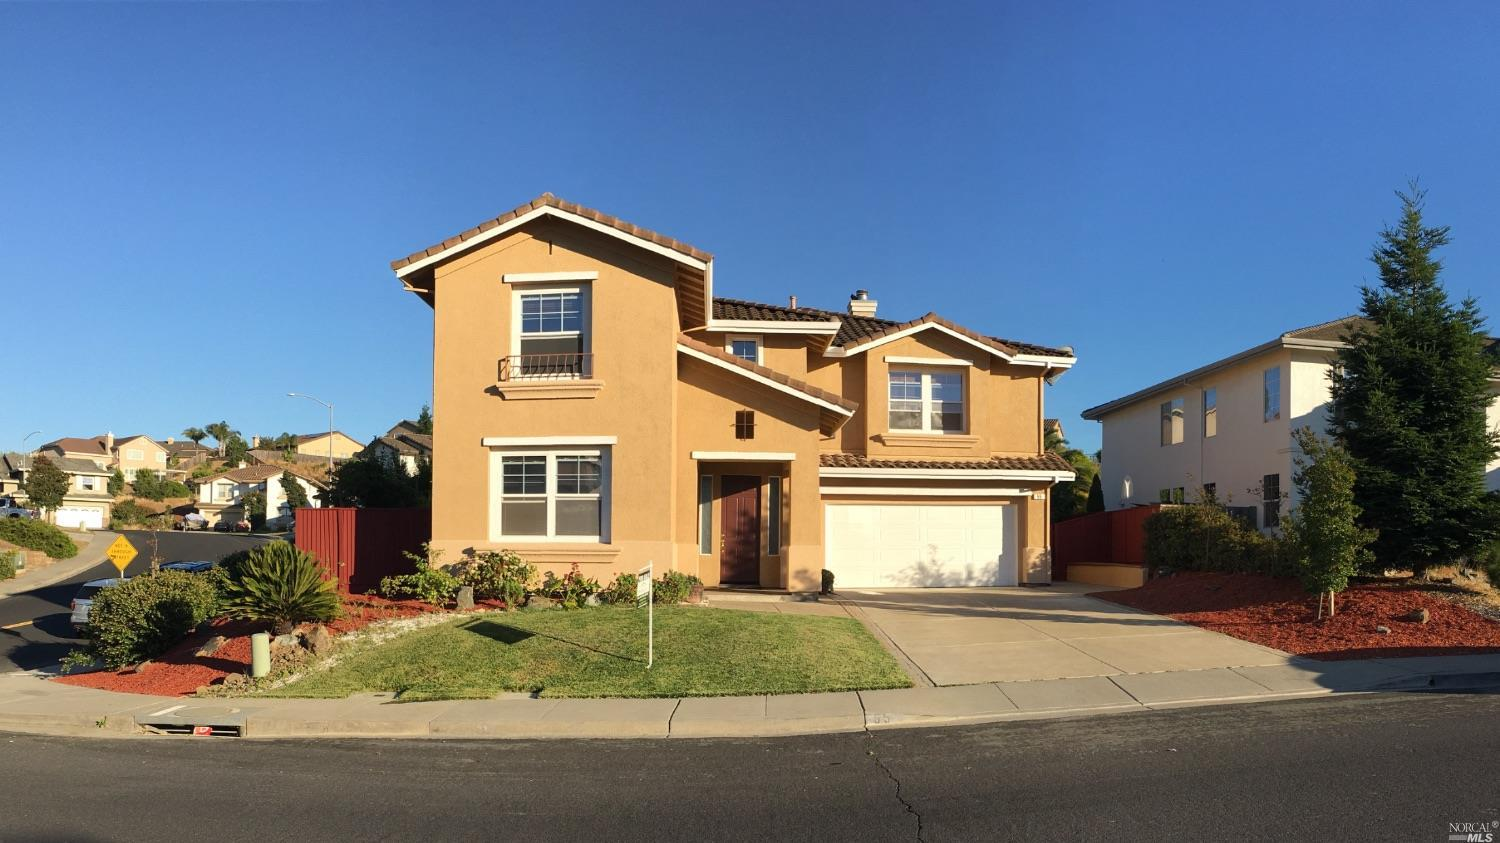 Houses for rent in american canyon 28 images family for American family homes for rent